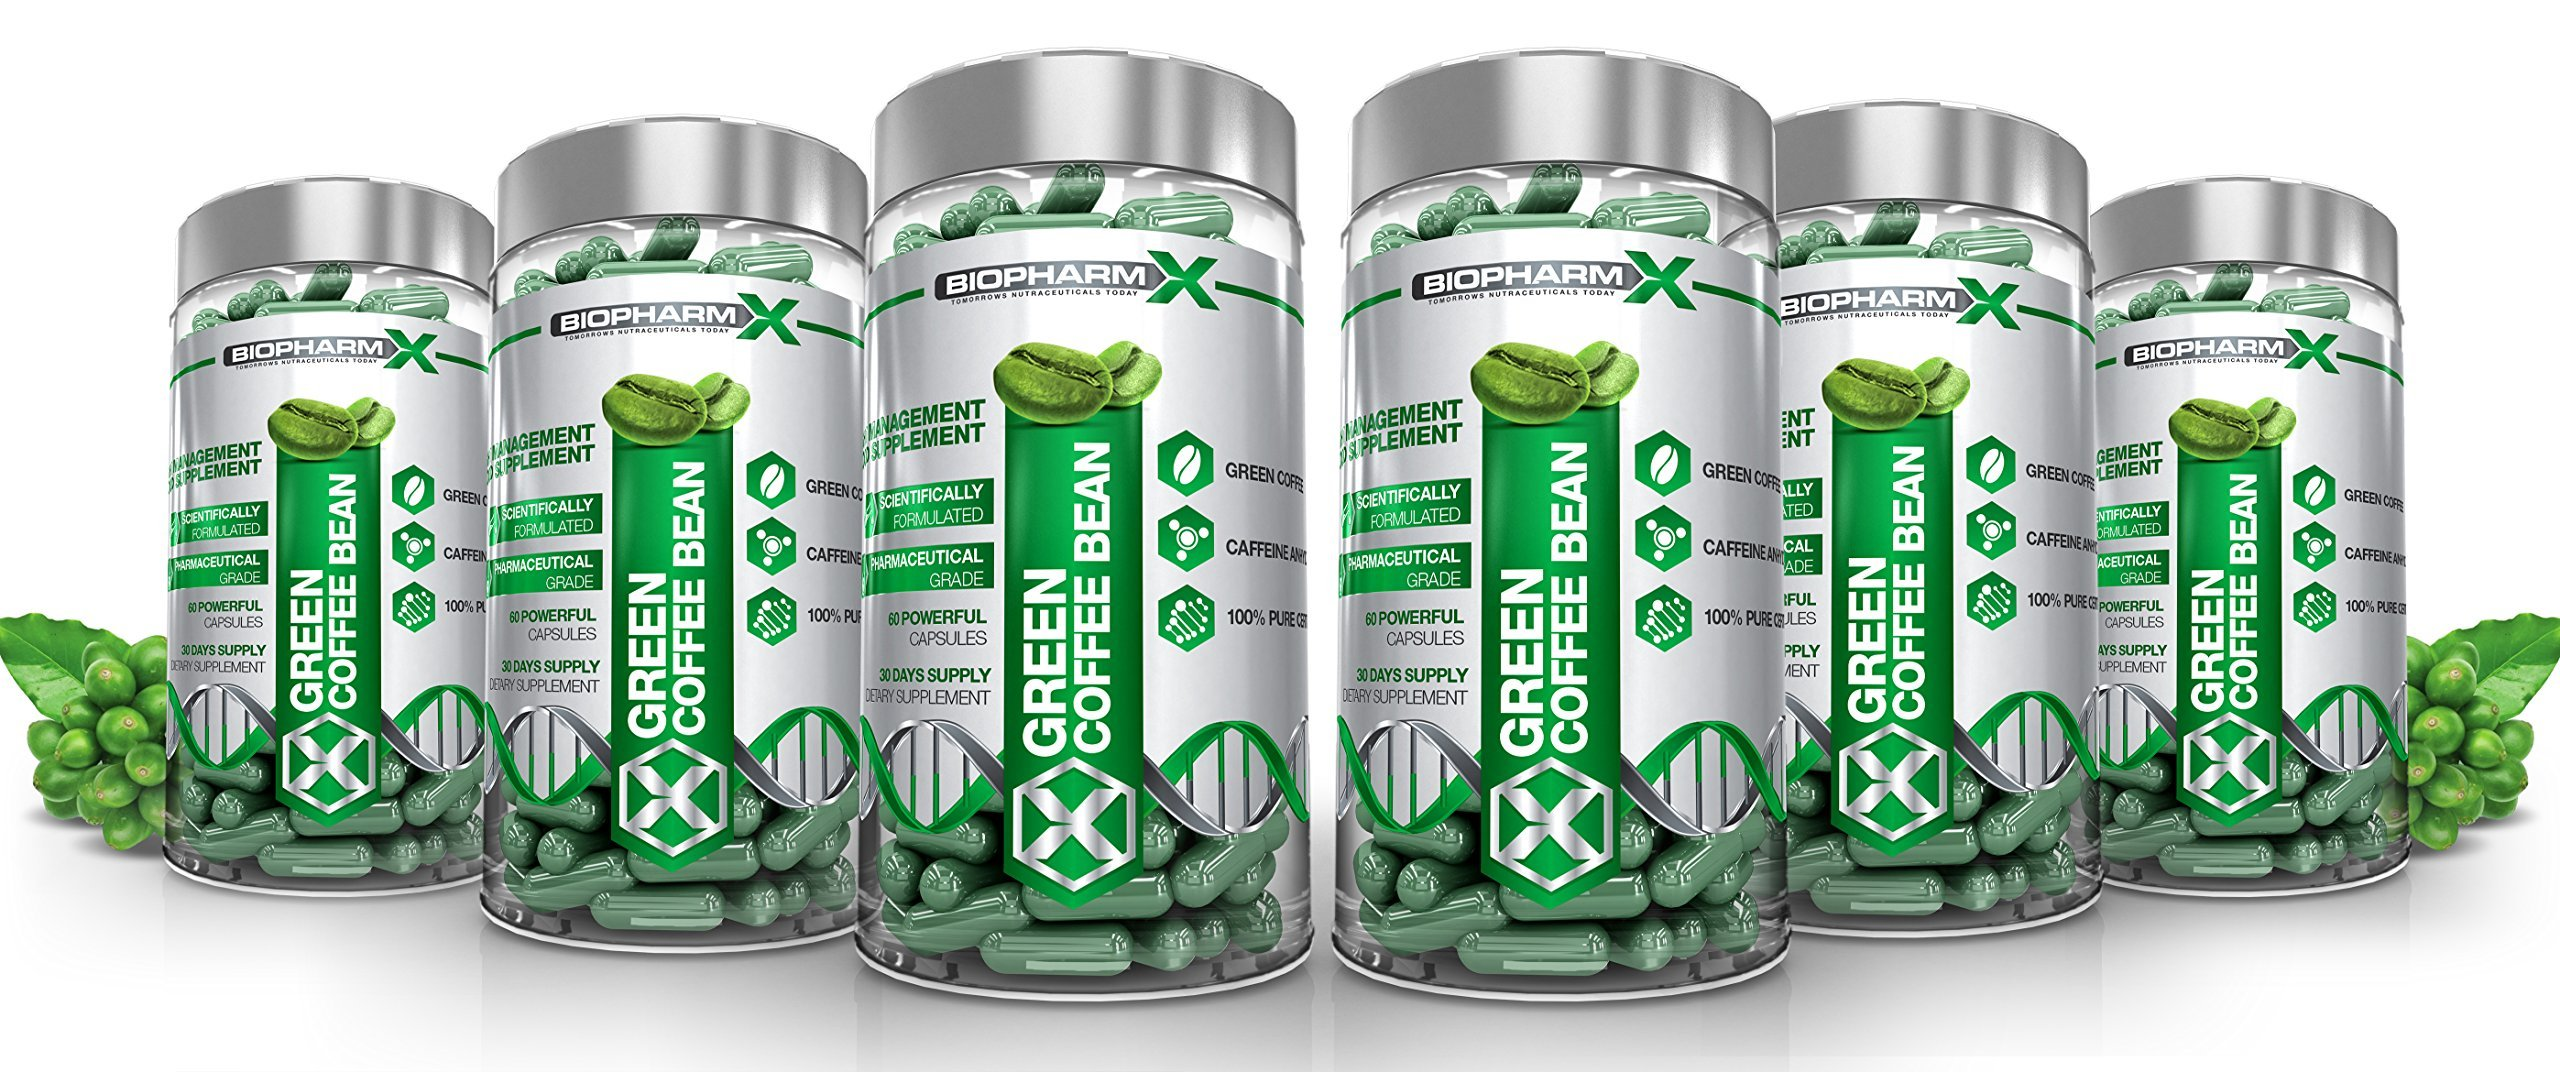 Biopharm-X x6 Green Coffee Bean Extract Diet Pills : Strongest Legal Antioxidant Fat Burner & Fat Blocker (360 Capsules | 6 Month Supply)